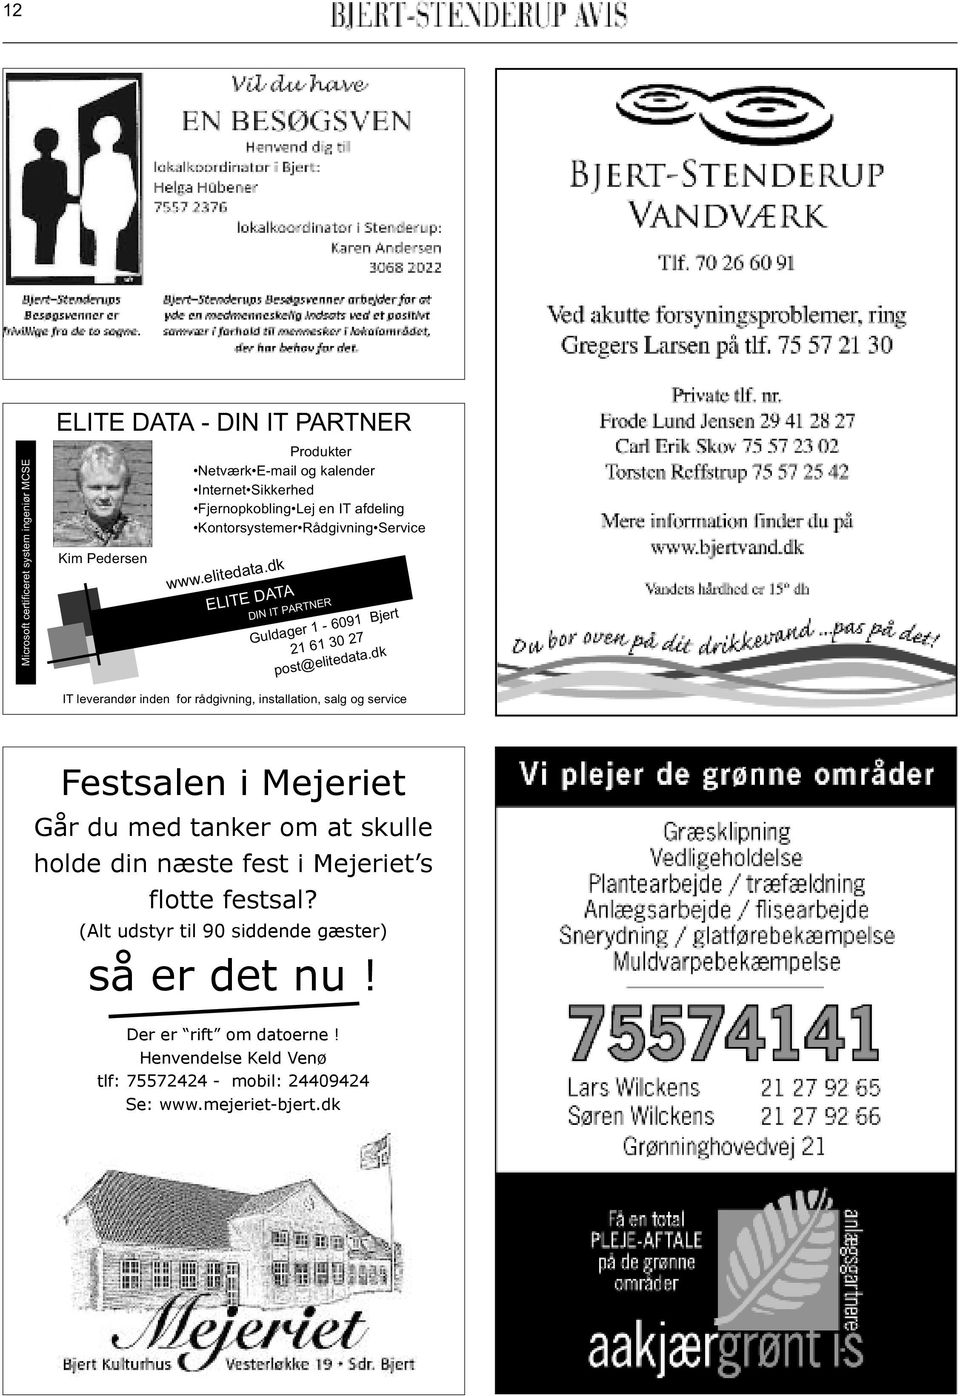 dk ELITE DATA DIN IT PARTNER Guldager 1-6091 Bjert 21 61 30 27 post@elitedata.